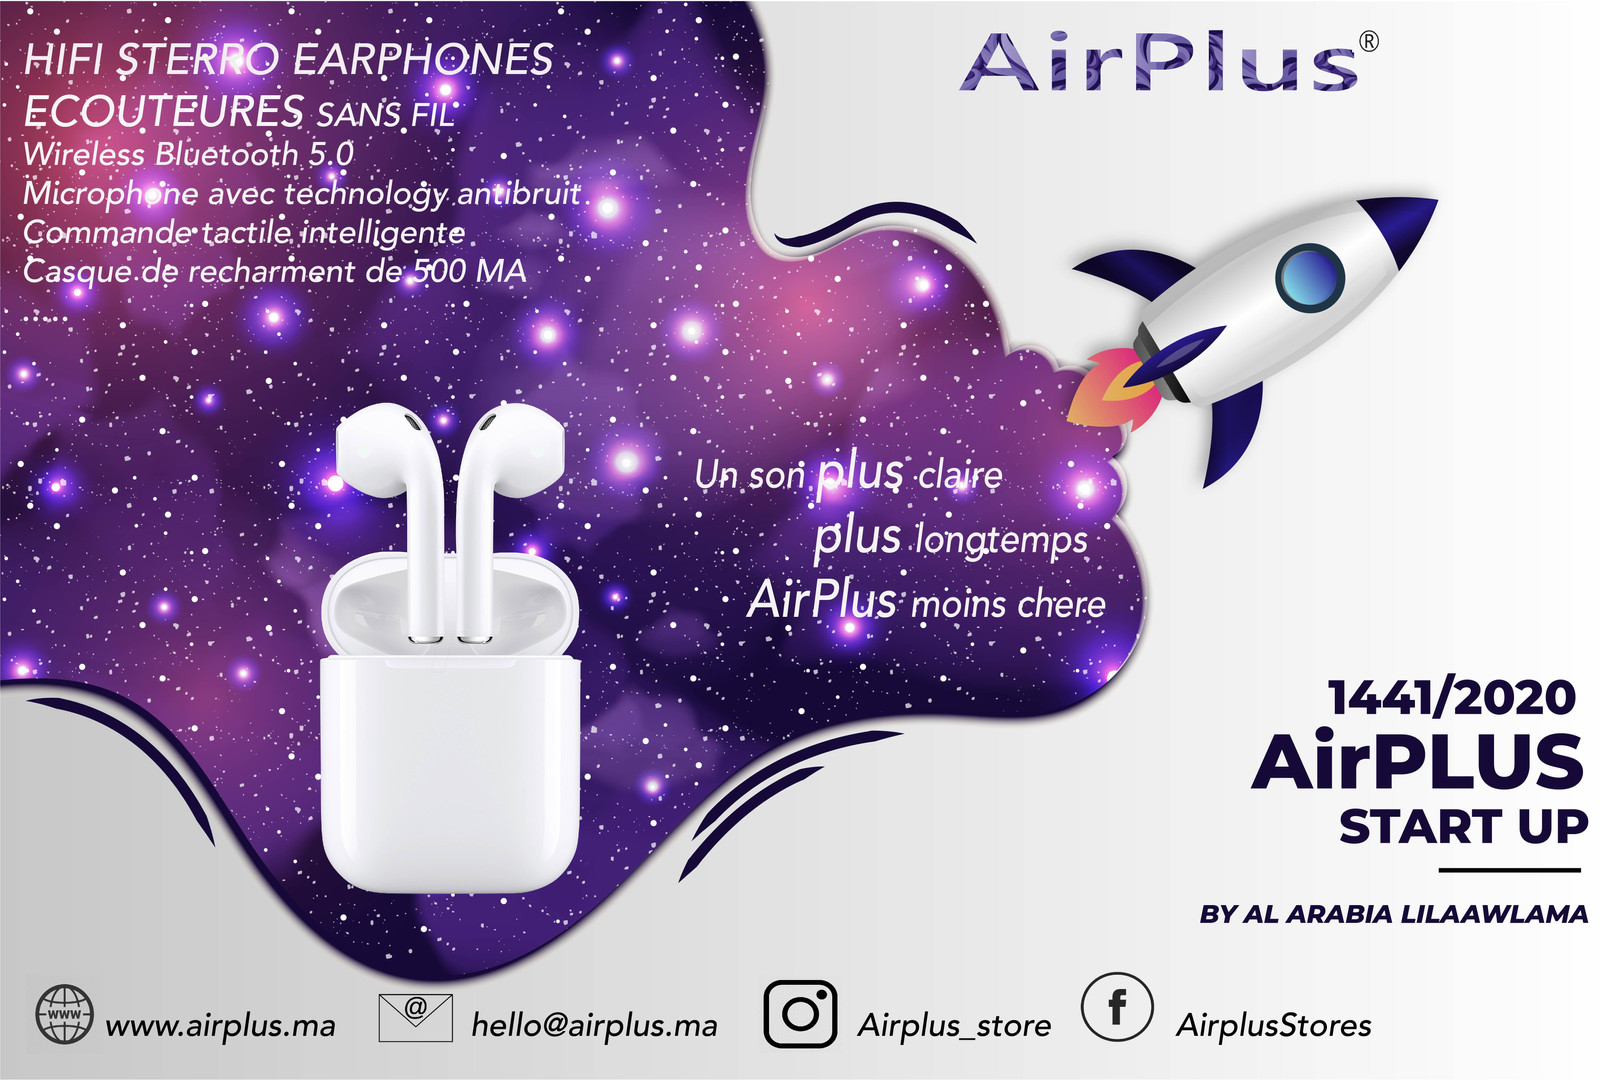 Airplus 1441/2020